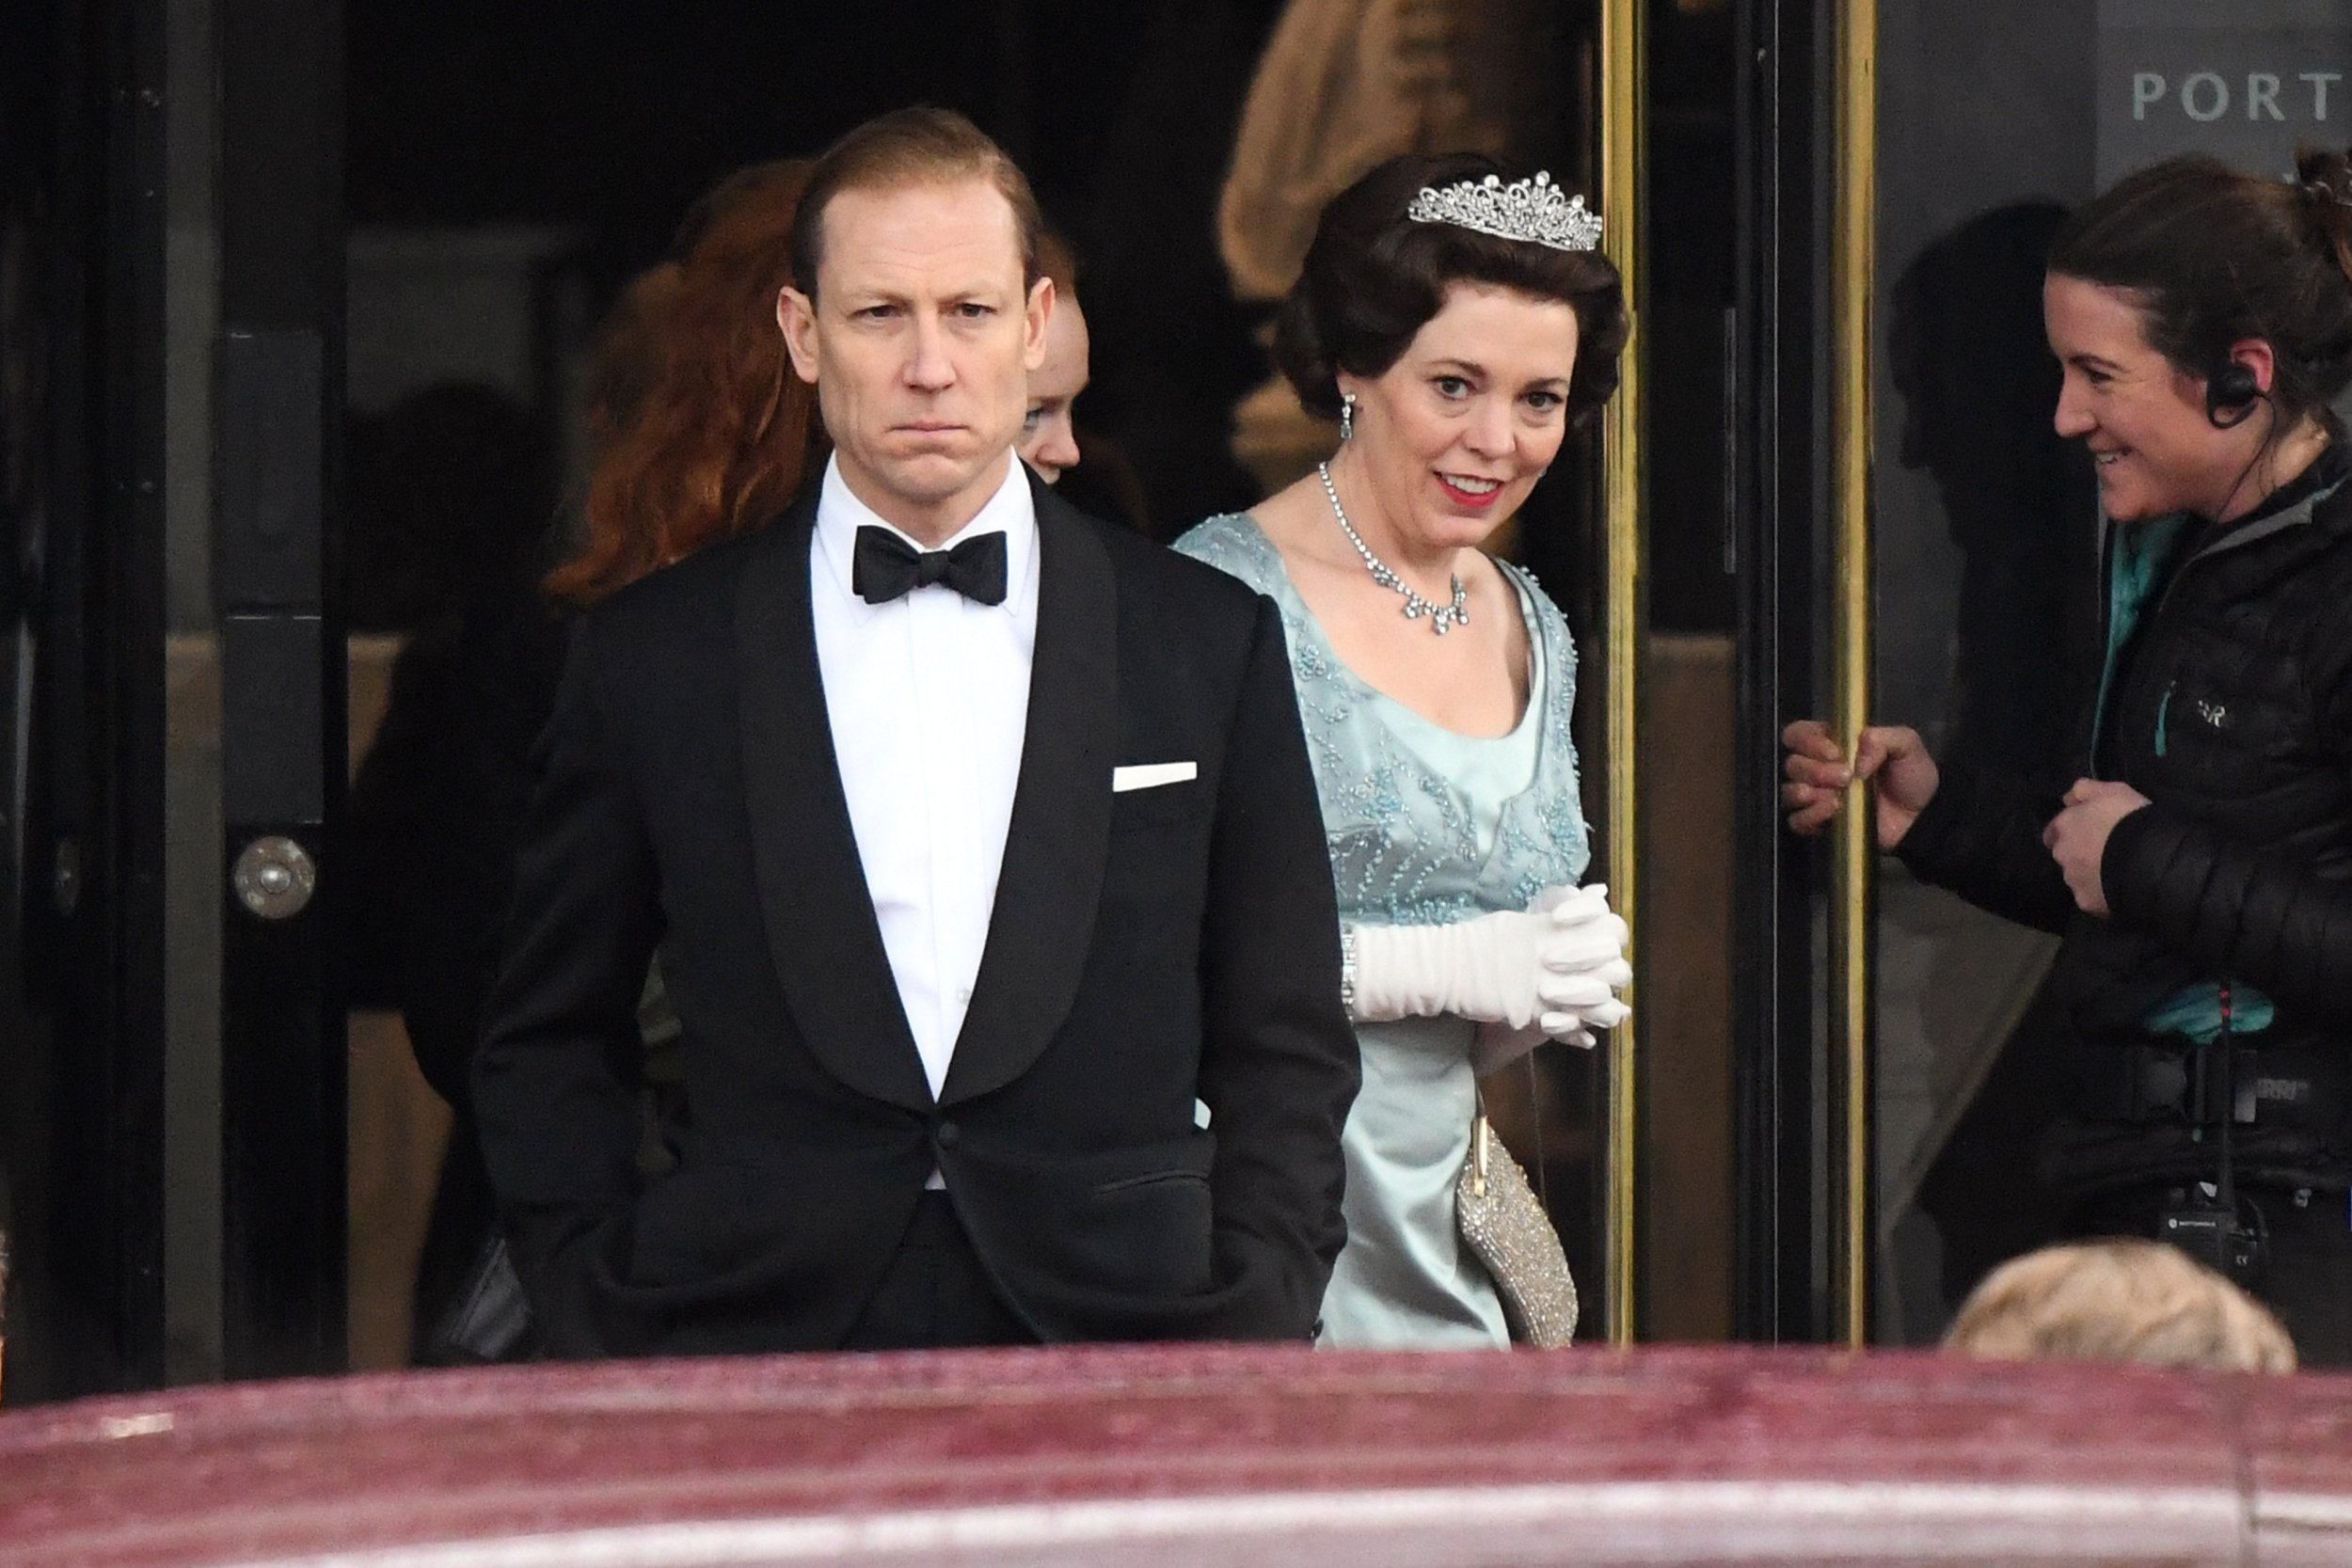 EXCLUSIVE: ** STRICT EMBARGO: No Web Till 10pm 3rd March 2019 ** Fee For Online After 10pm 300 GBP For Set * * Min Print Fee 250 GBP PP * Double Pg 1 * Olivia Colman (Queen Elizabeth II) and Tobias Menzies (Prince Phillip) seen filming scenes for 'The Crown' at the Royal College of Physicians in central London. Pictured: Tobias Menzies,Olivia Colman Ref: SPL5058067 250119 EXCLUSIVE Picture by: SplashNews.com ** STRICT EMBARGO: No Web Till 10pm 3rd March 2019 ** Fee For Online After 10pm 300 GBP For Set * * Min Print Fee 250 GBP PP * Double Pg 1 * Splash News and Pictures Los Angeles: 310-821-2666 New York: 212-619-2666 London: 0207 644 7656 Milan: 02 4399 8577 photodesk@splashnews.com World Rights